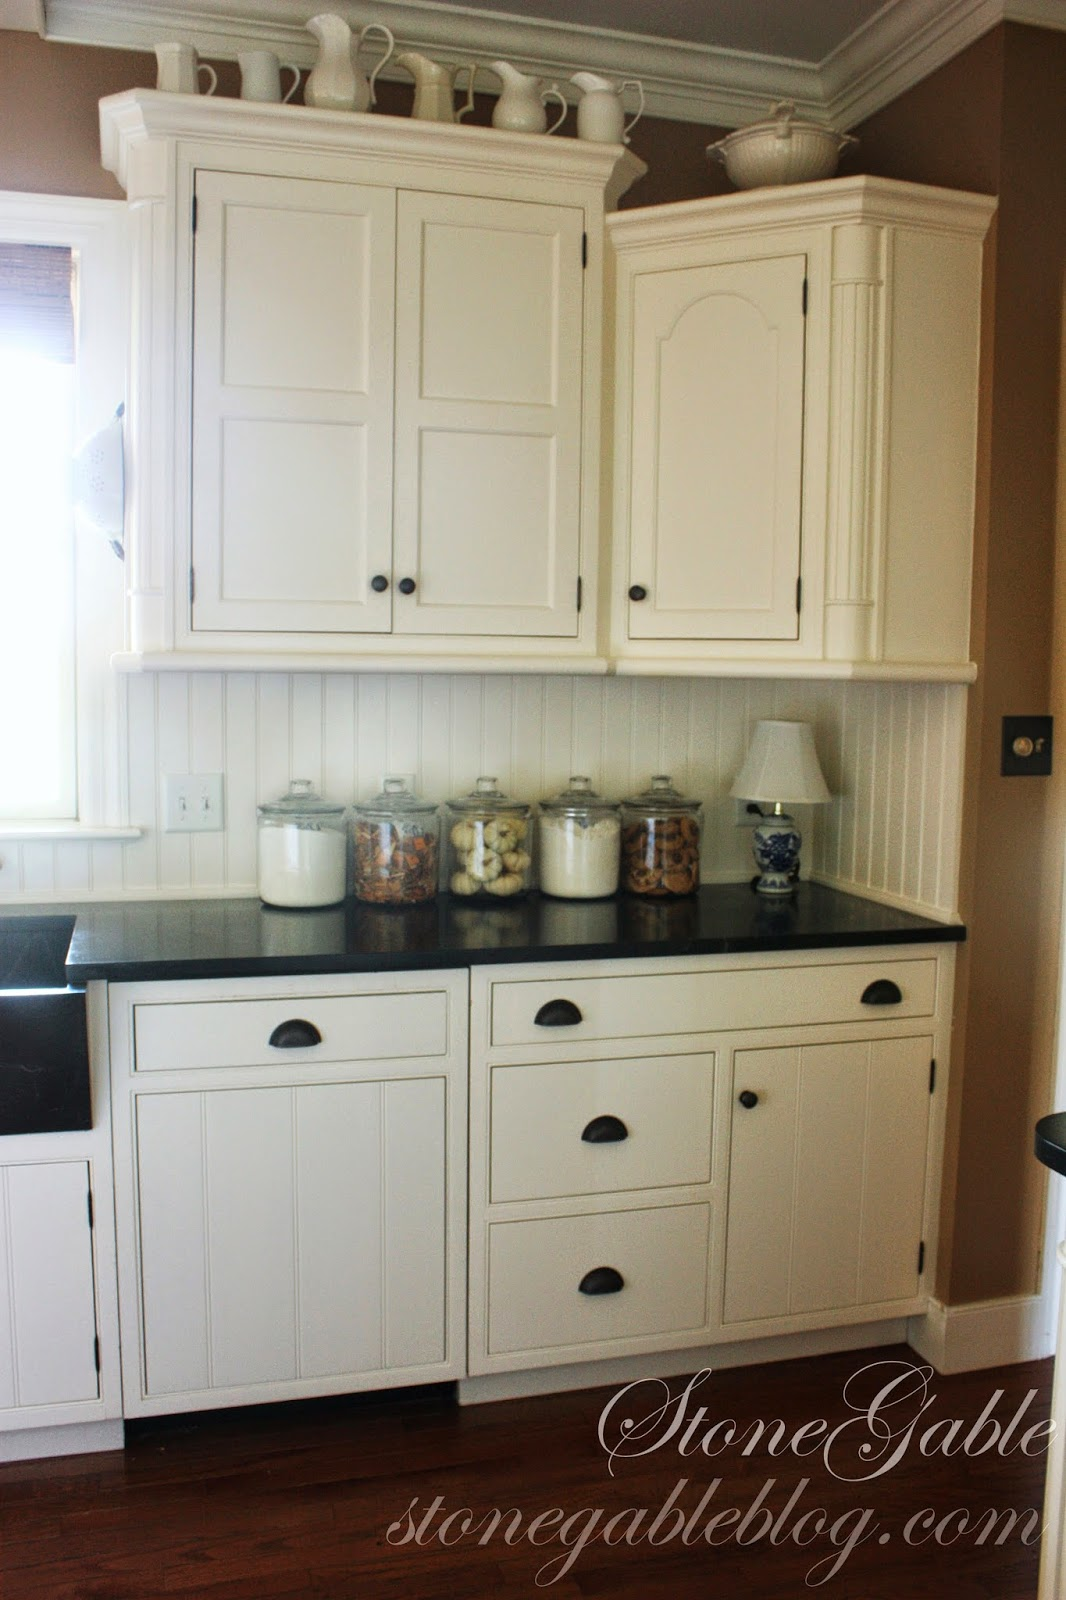 kraftmaid kitchen island ideas, farmhouse floor ideas, victorian kitchen cabinet ideas, apartment kitchen cabinet ideas, rustic kitchen ideas, ranch kitchen cabinet ideas, home cabinet ideas, industrial kitchen cabinet ideas, victorian style kitchen ideas, kitchen bar cabinet ideas, farmhouse vanity ideas, farmhouse dining set ideas, farmhouse closet ideas, porch cabinet ideas, beach kitchen cabinet ideas, cabin kitchen cabinet ideas, farmhouse door ideas, farmhouse furniture ideas, english cottage kitchen cabinet ideas, prim kitchen ideas, on ideas for kitchen cabinets white farmhouse